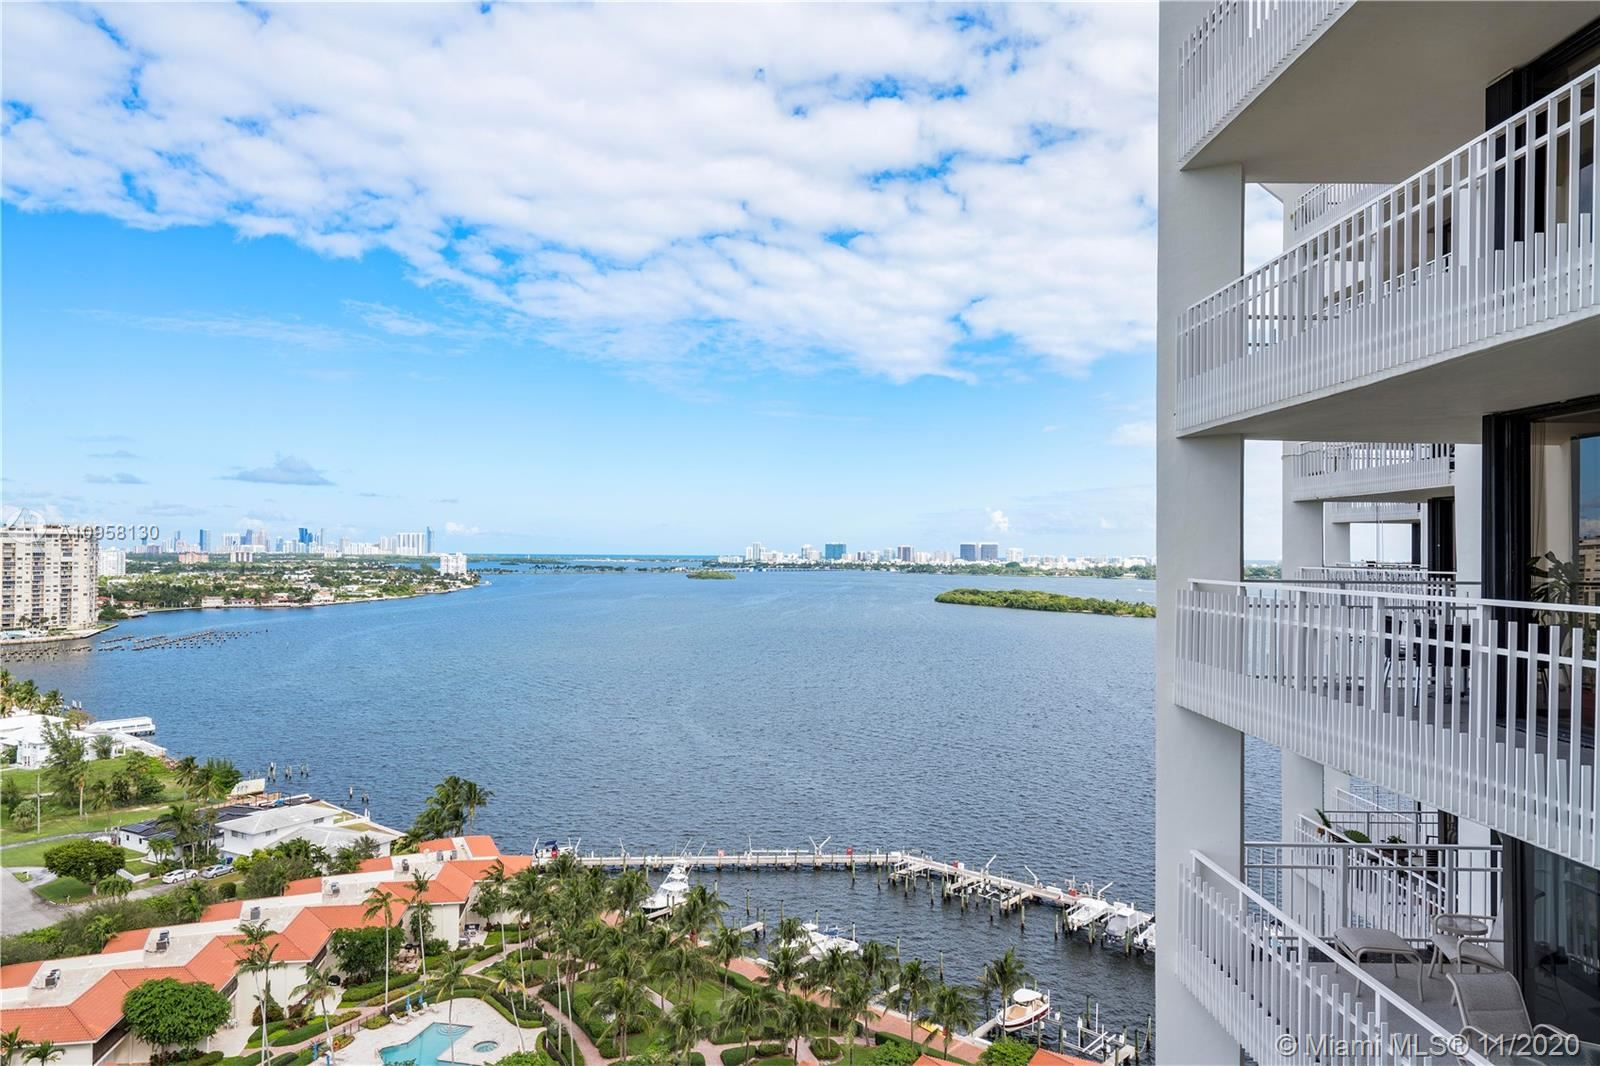 4000 Towerside Terrace #2007, Miami, FL 33138 - #: A10958130